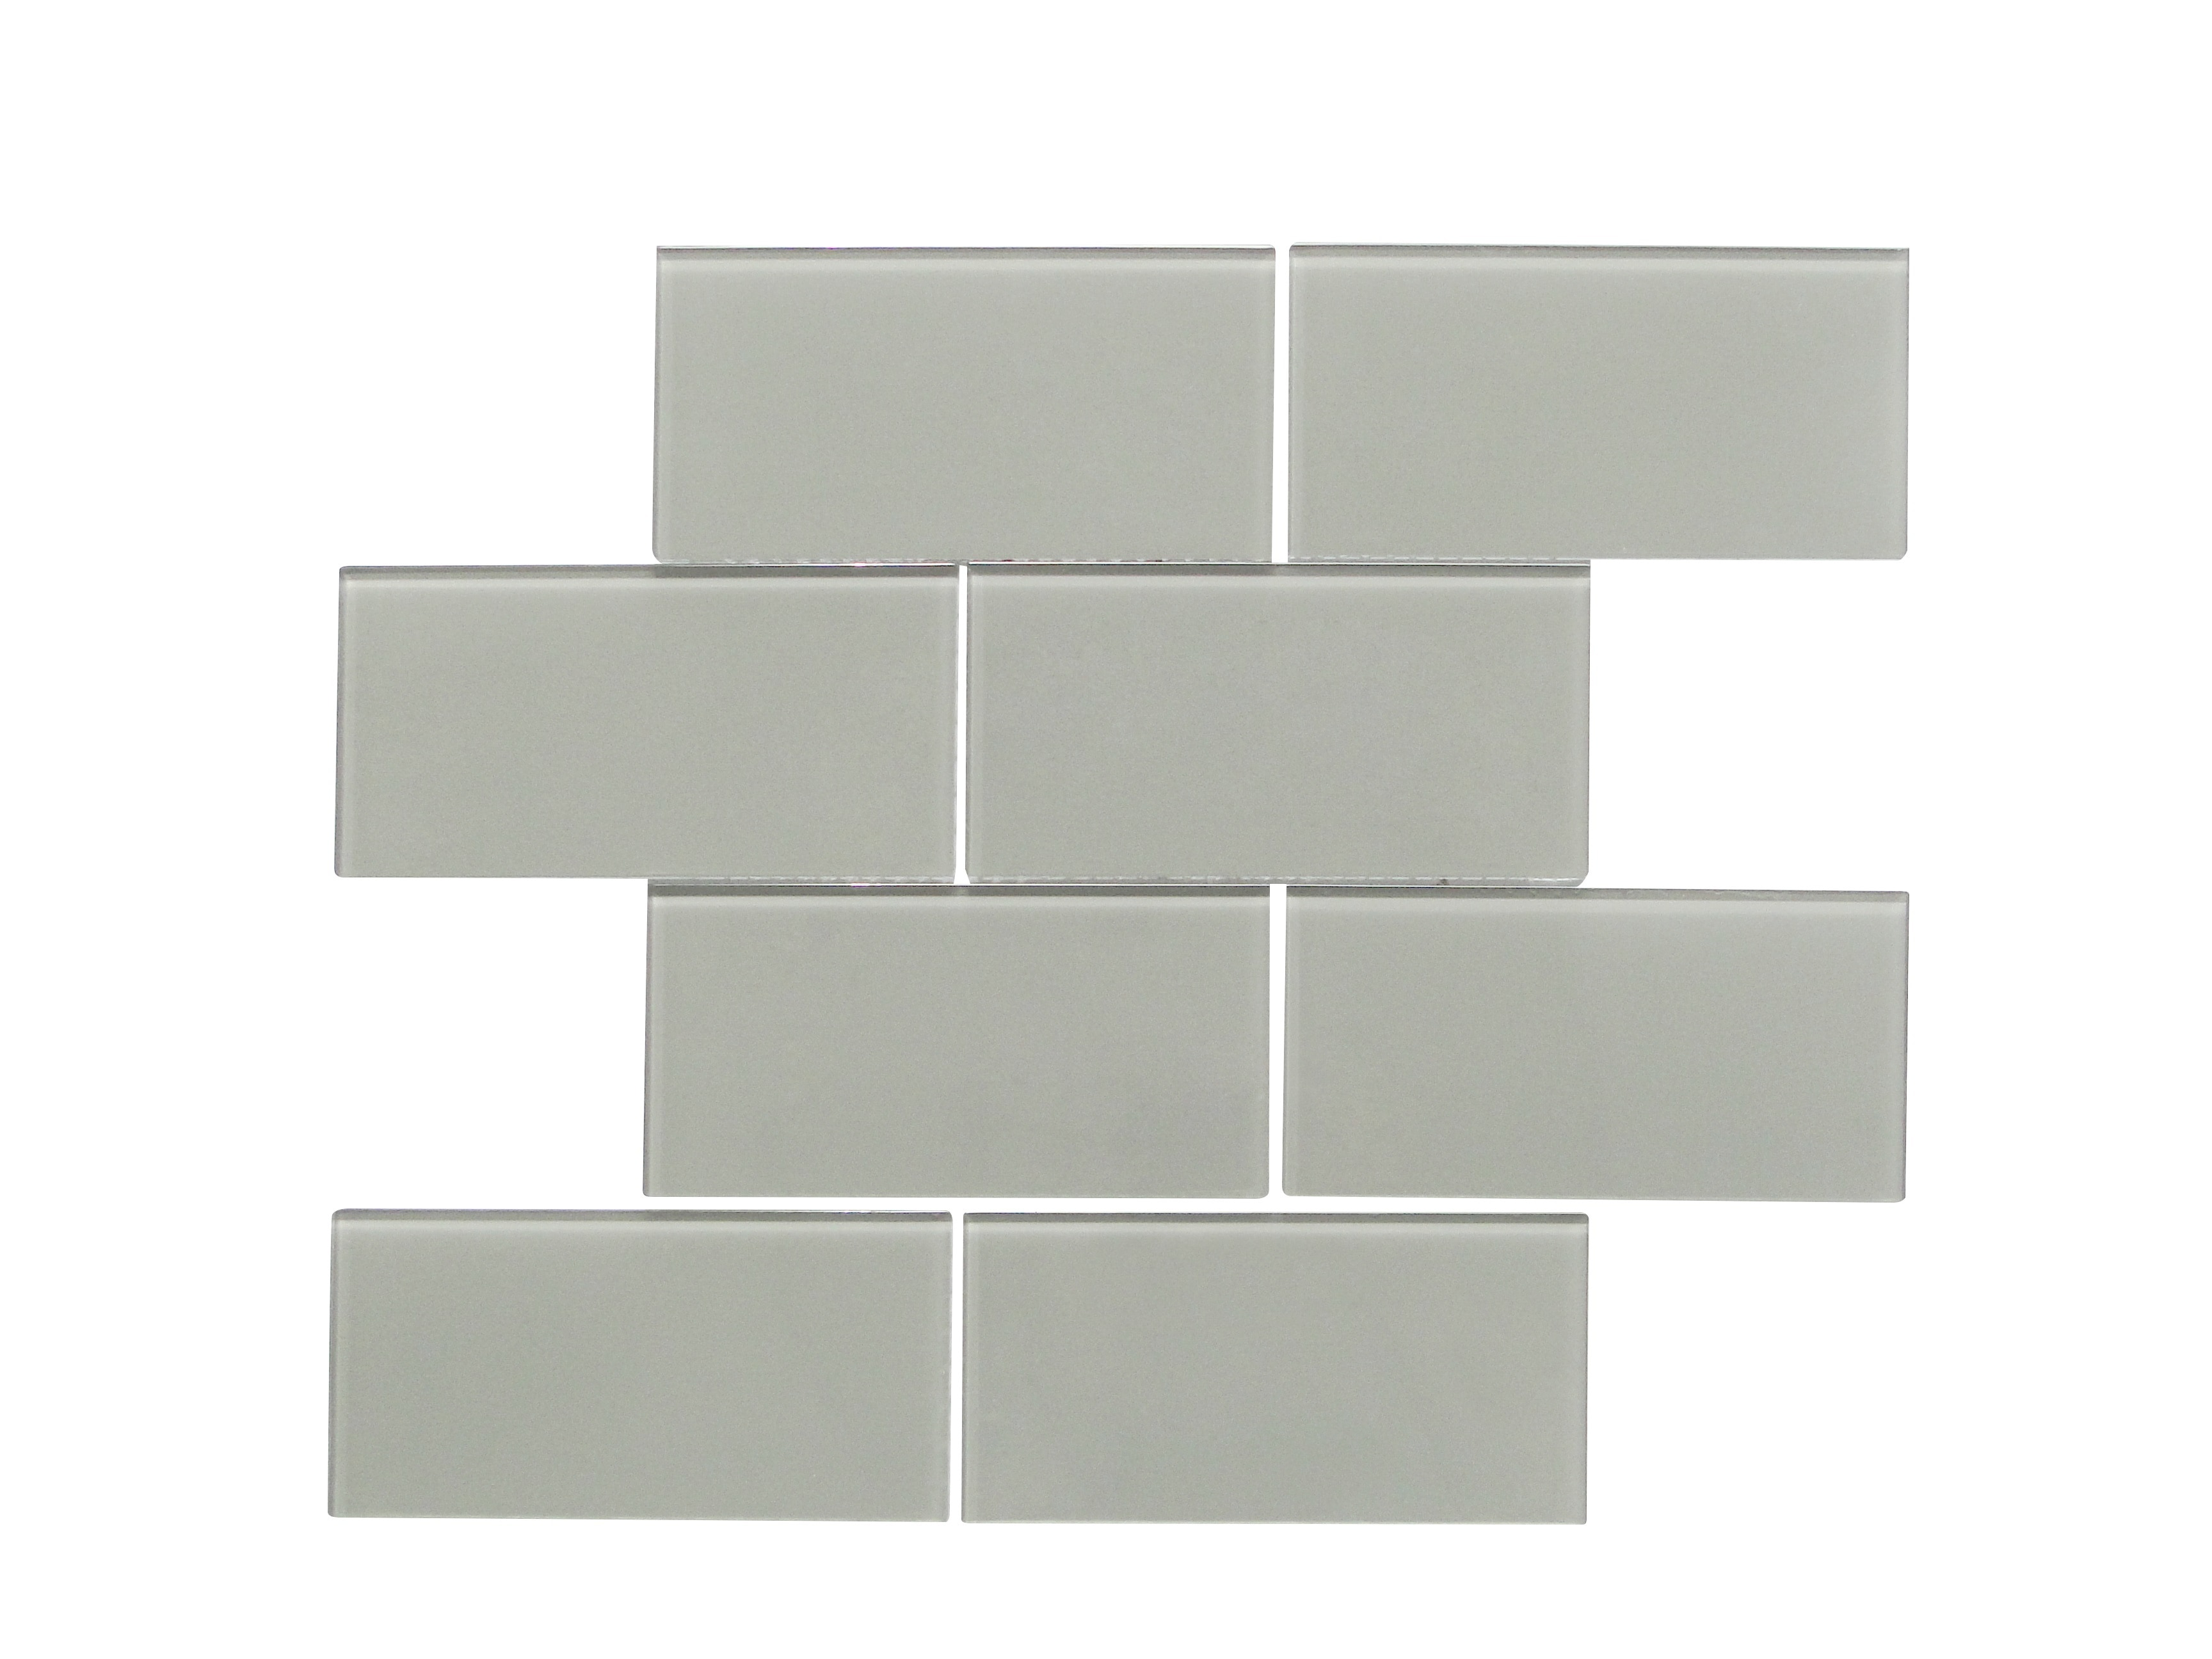 """Glass Mosaic / 16 x 12 x 0.16 inches / Glossy Large 3"""" X 6"""" X 4mm Glass Subway Mosaic Tile In Dark Gray 0"""